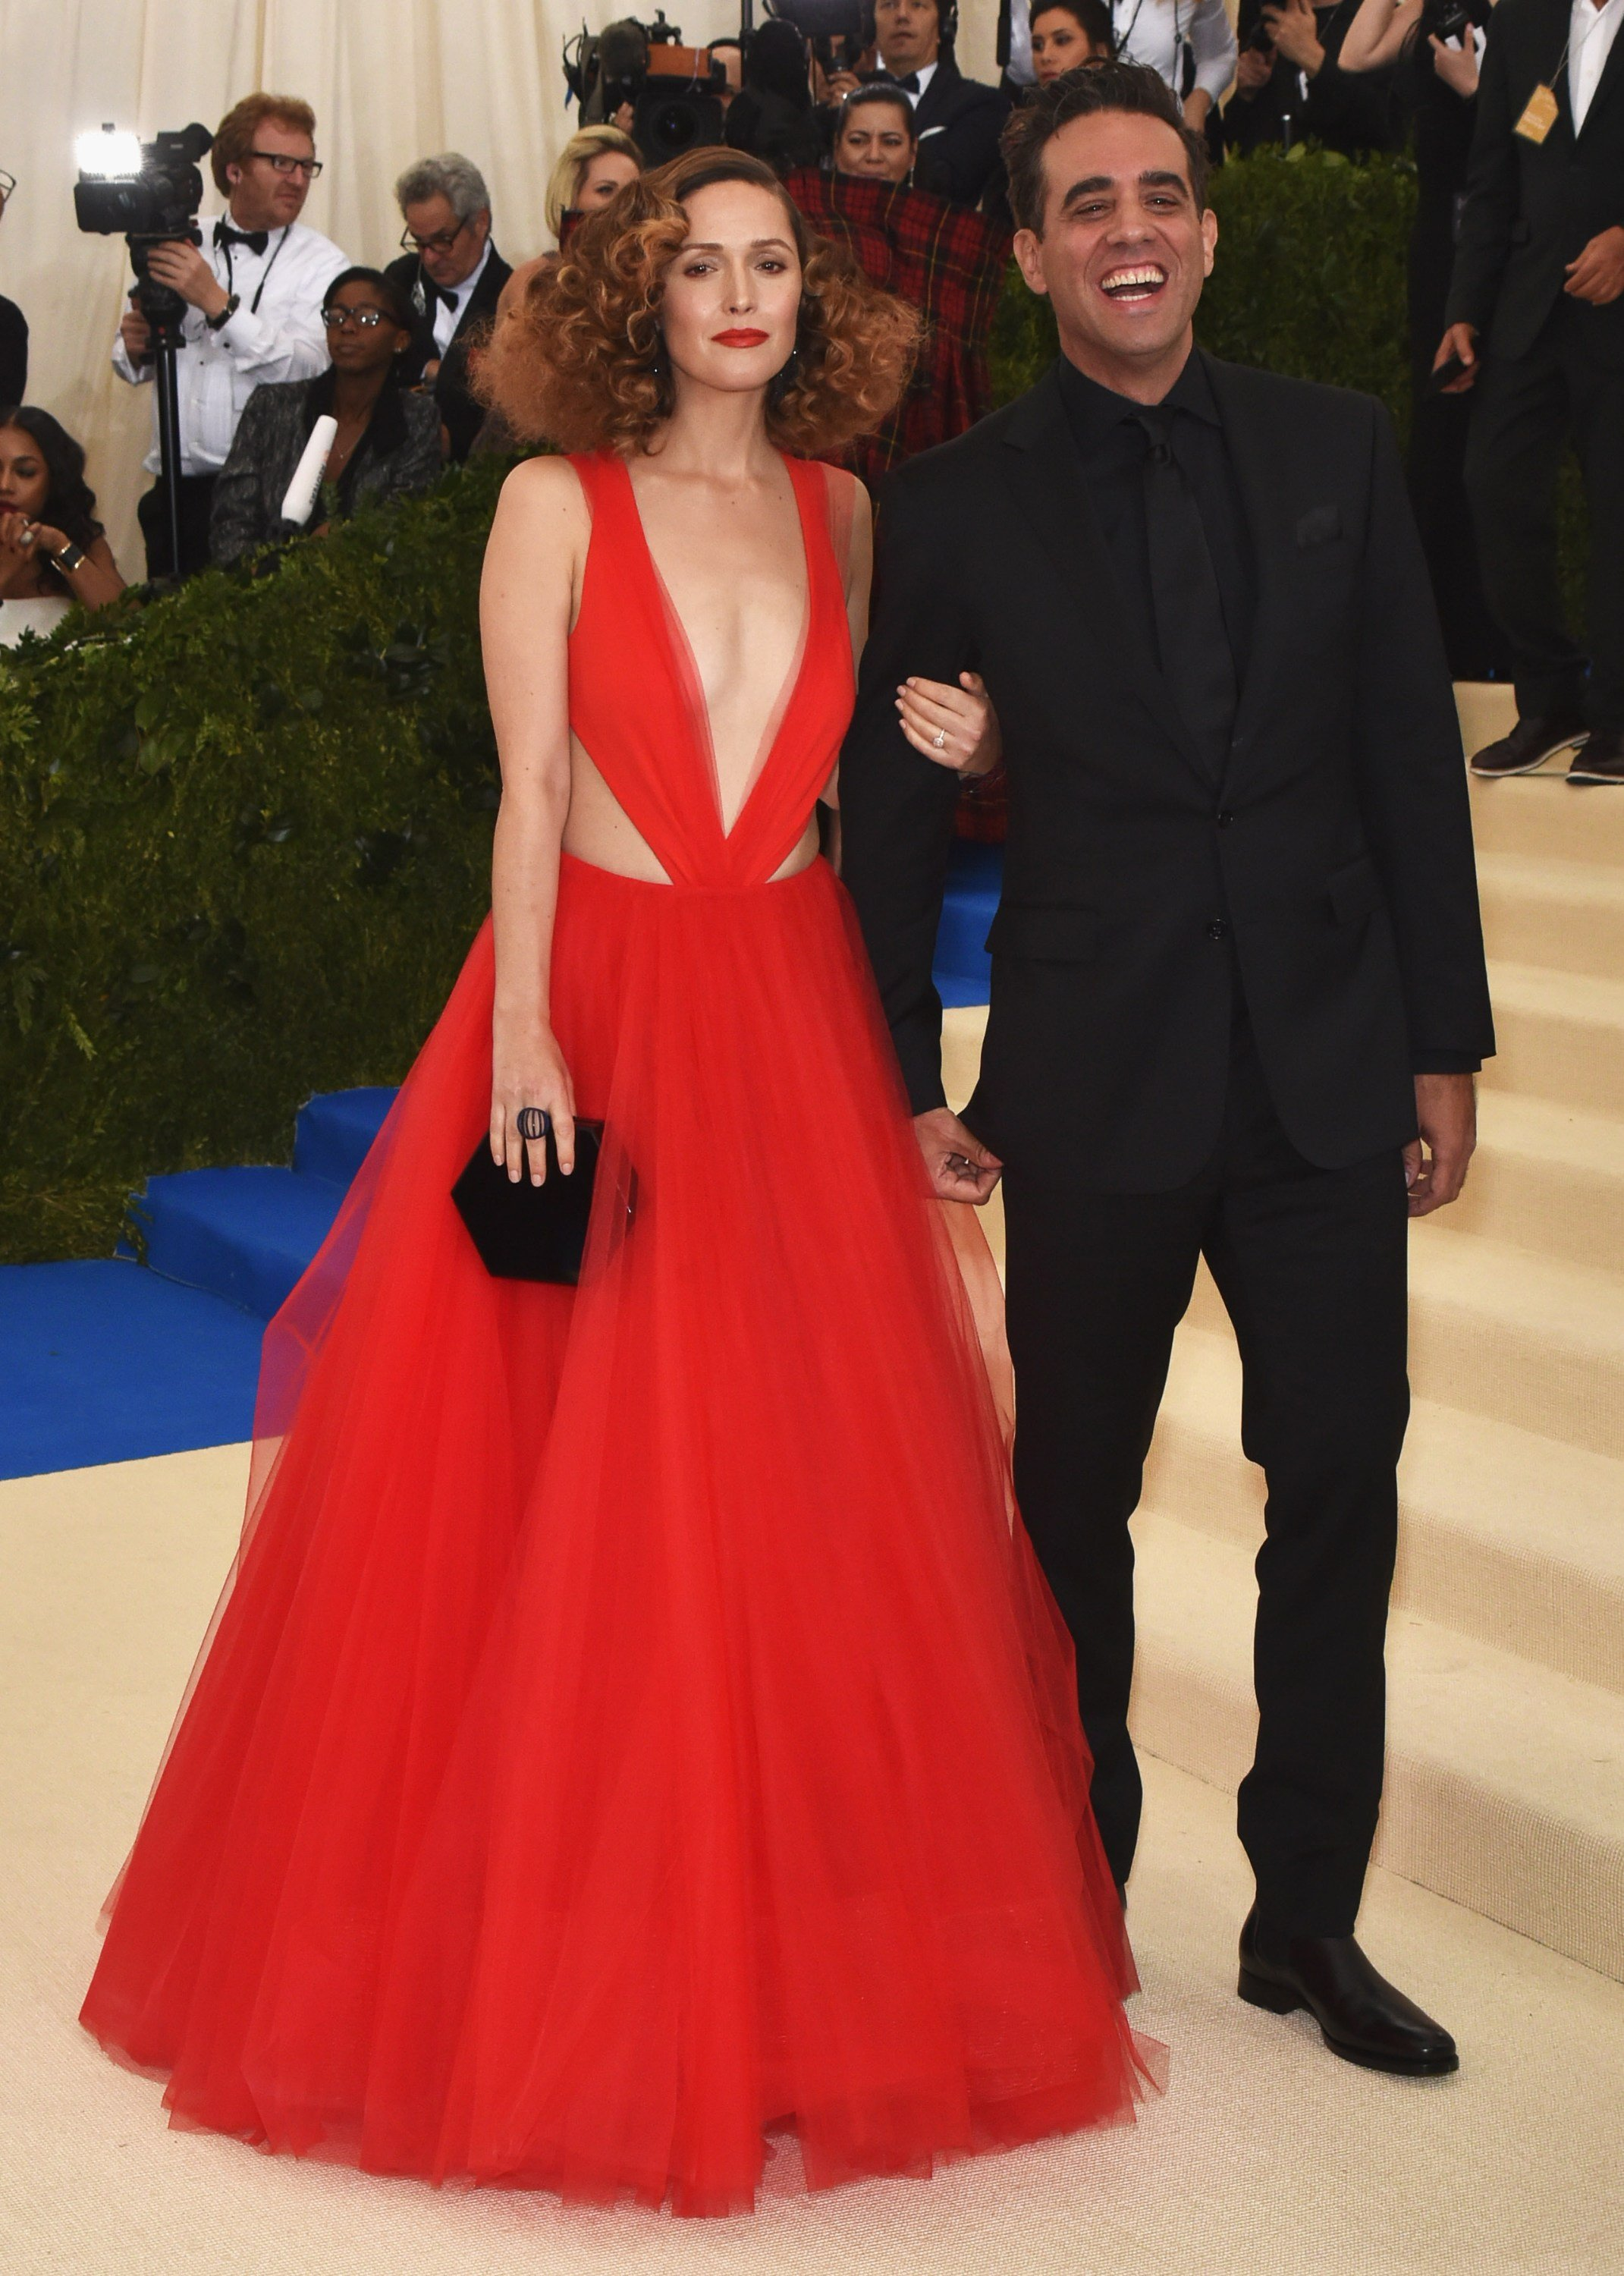 Rose Byrne, Bobby Cannavale at arrivals for Rei Kawakubo & Comme des Garcons Costume Institute Gala - ARRIVALS 1, Metropolitan Museum of Art, New York, NY May 1, 2017., Image: 330857441, License: Rights-managed, Restrictions: For usage credit please use; Steven Ferdman/Everett Collection, Model Release: no, Credit line: Profimedia, Everett